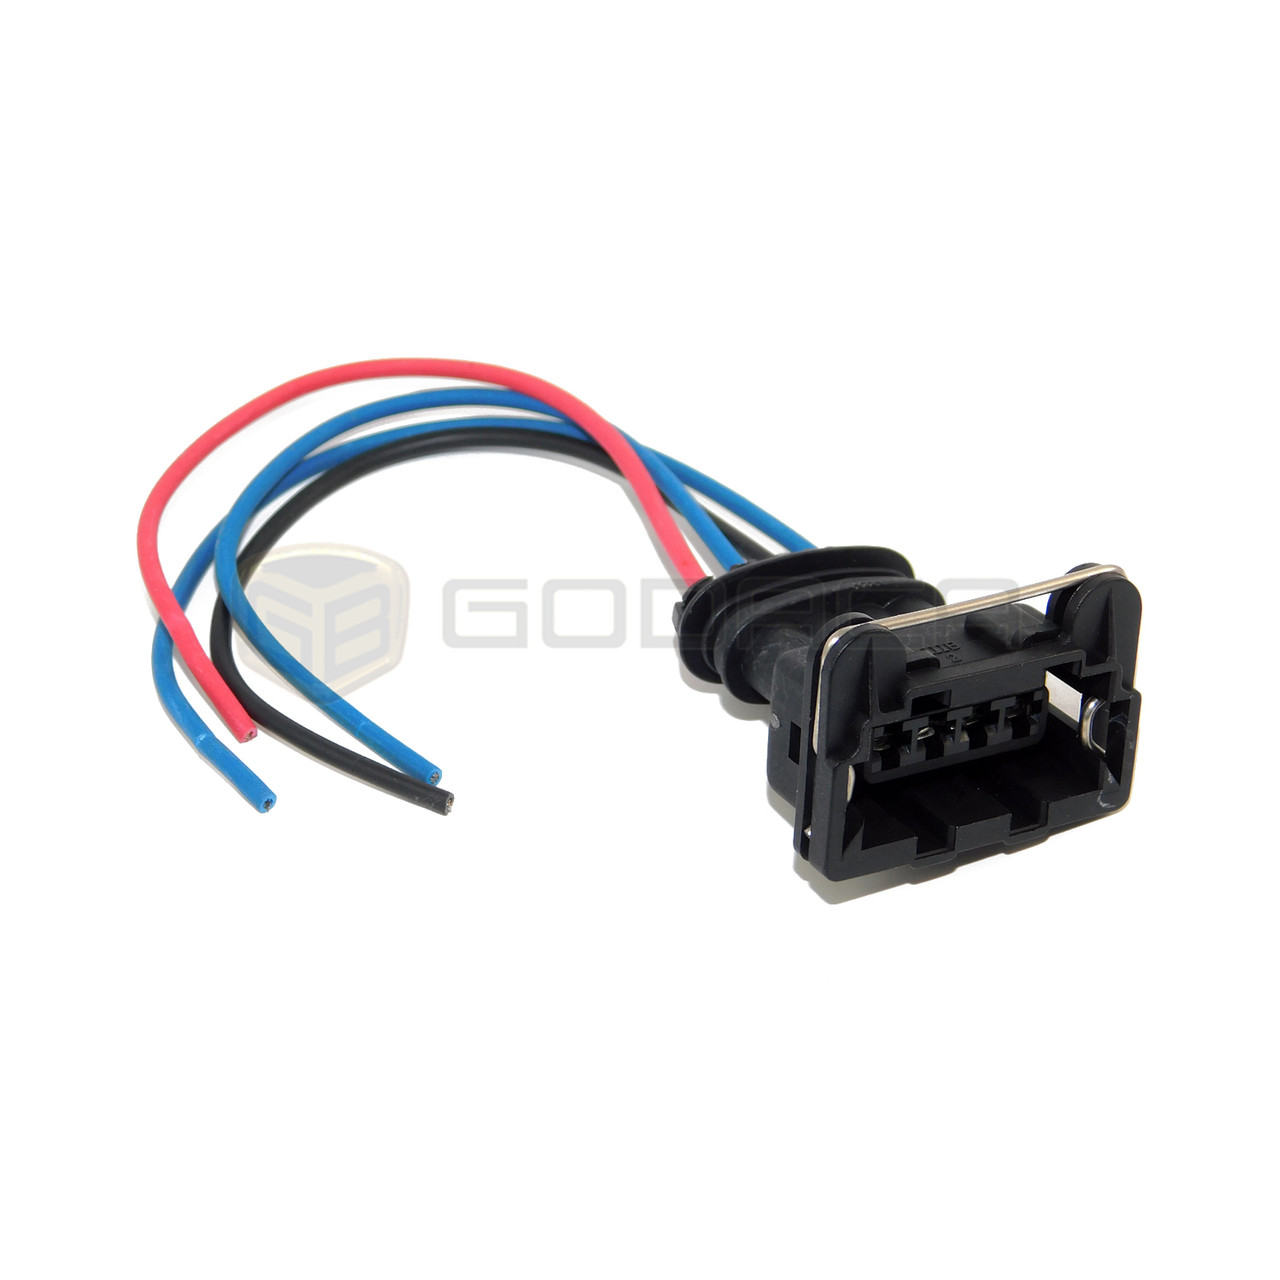 small resolution of 1 x connector 4 way sensor distributor fuel injector connector harness plug godaca llc